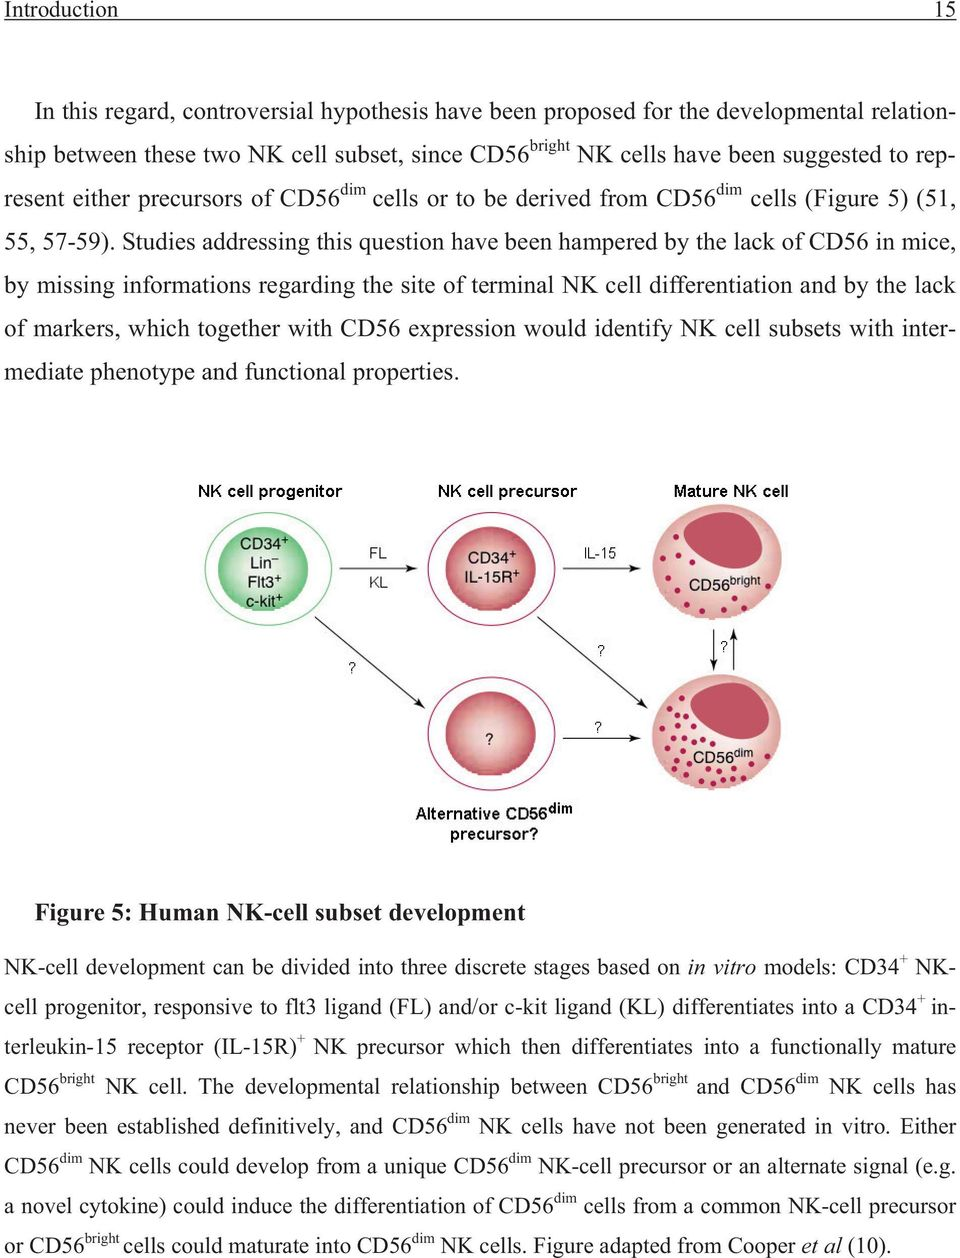 Studies addressing this question have been hampered by the lack of CD56 in mice, by missing informations regarding the site of terminal NK cell differentiation and by the lack of markers, which